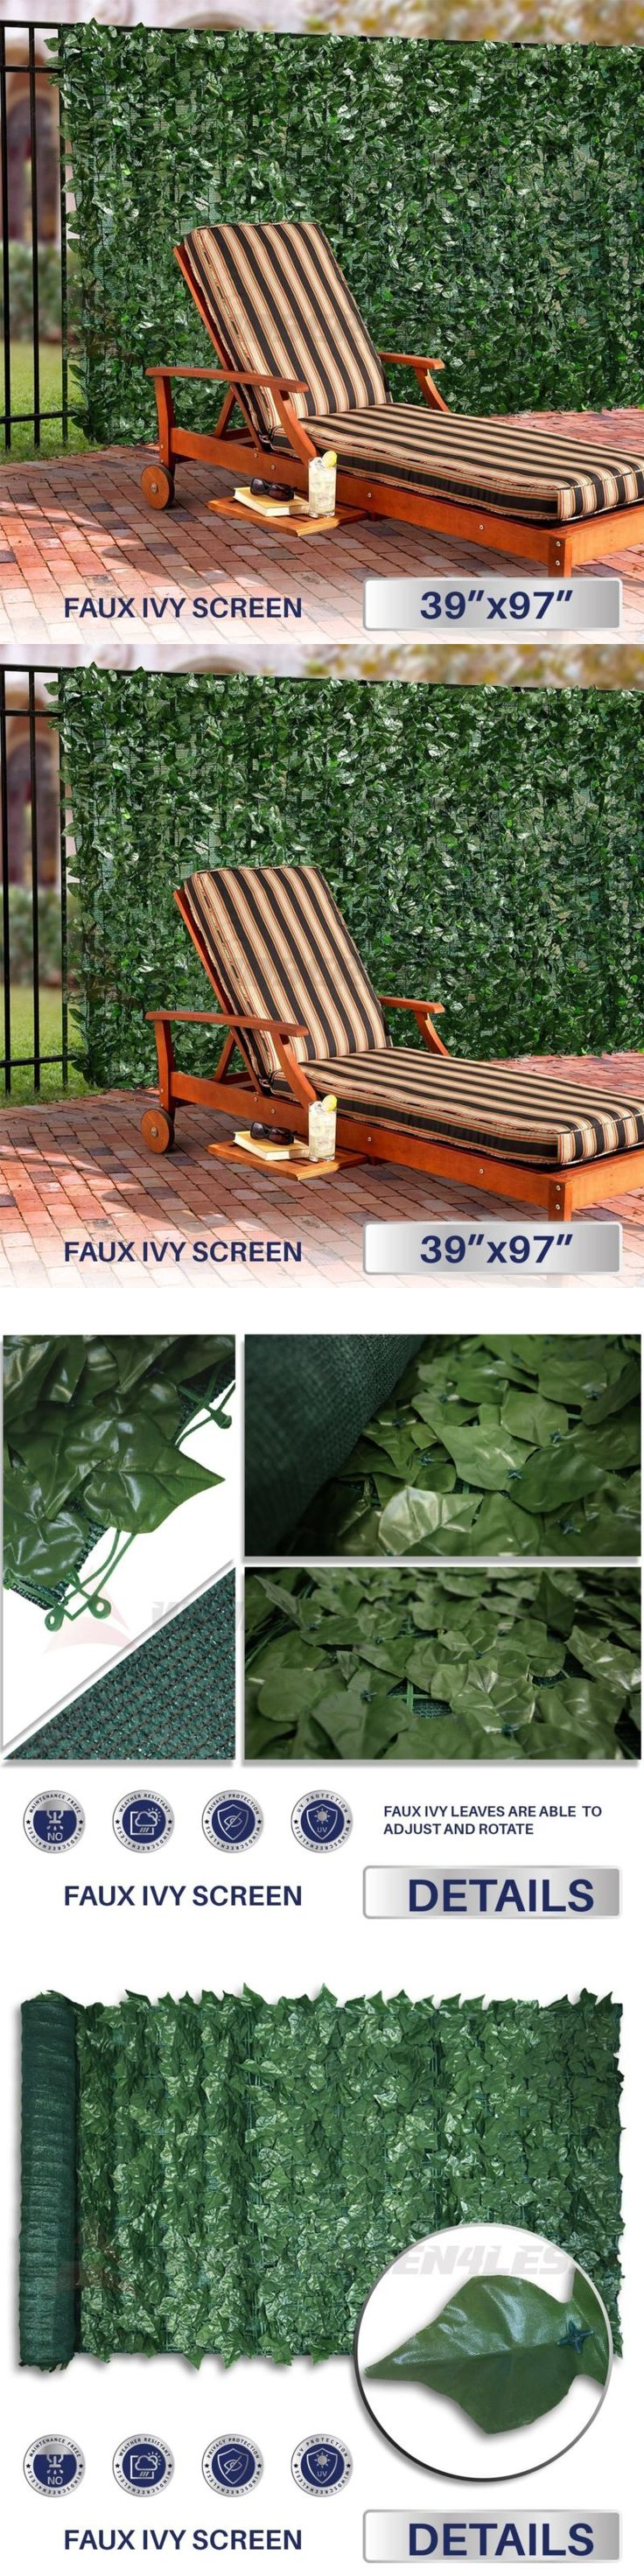 Privacy screen for chain link fence ebay - Privacy Screens Windscreens 180991 Artificial Privacy Fence Roll Screen Faux Ivy Mesh Windscreen Leaf Cover